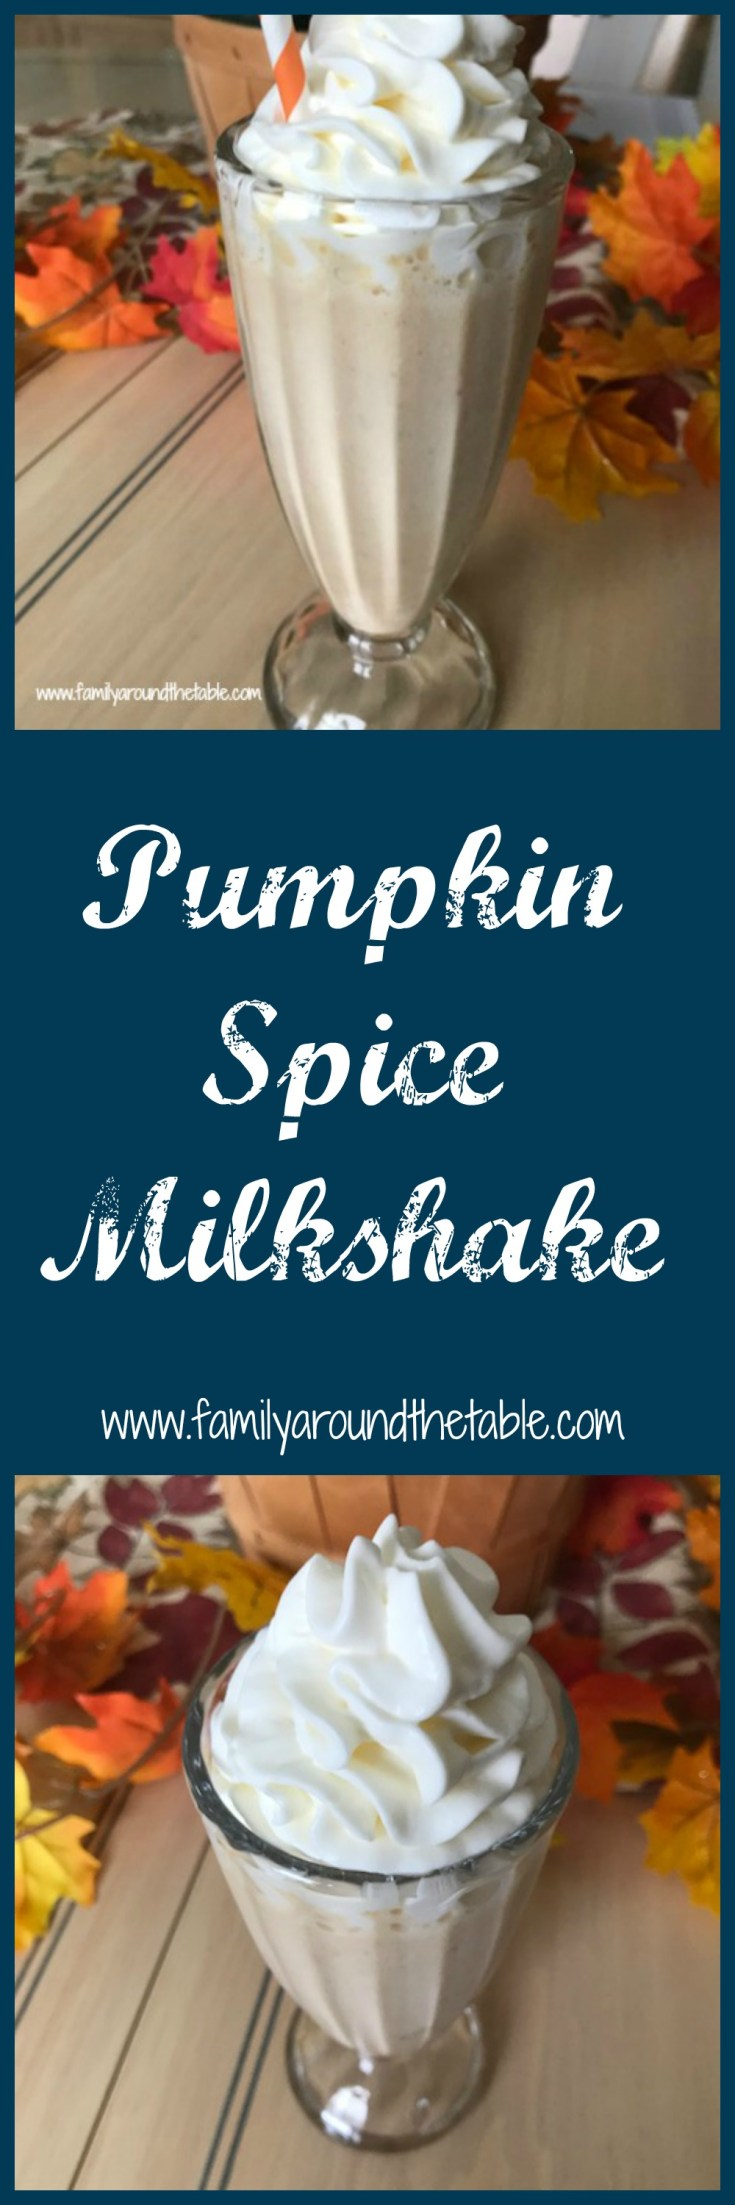 Treat yourself to to a fall classic in a pumpkin spice milkshake.